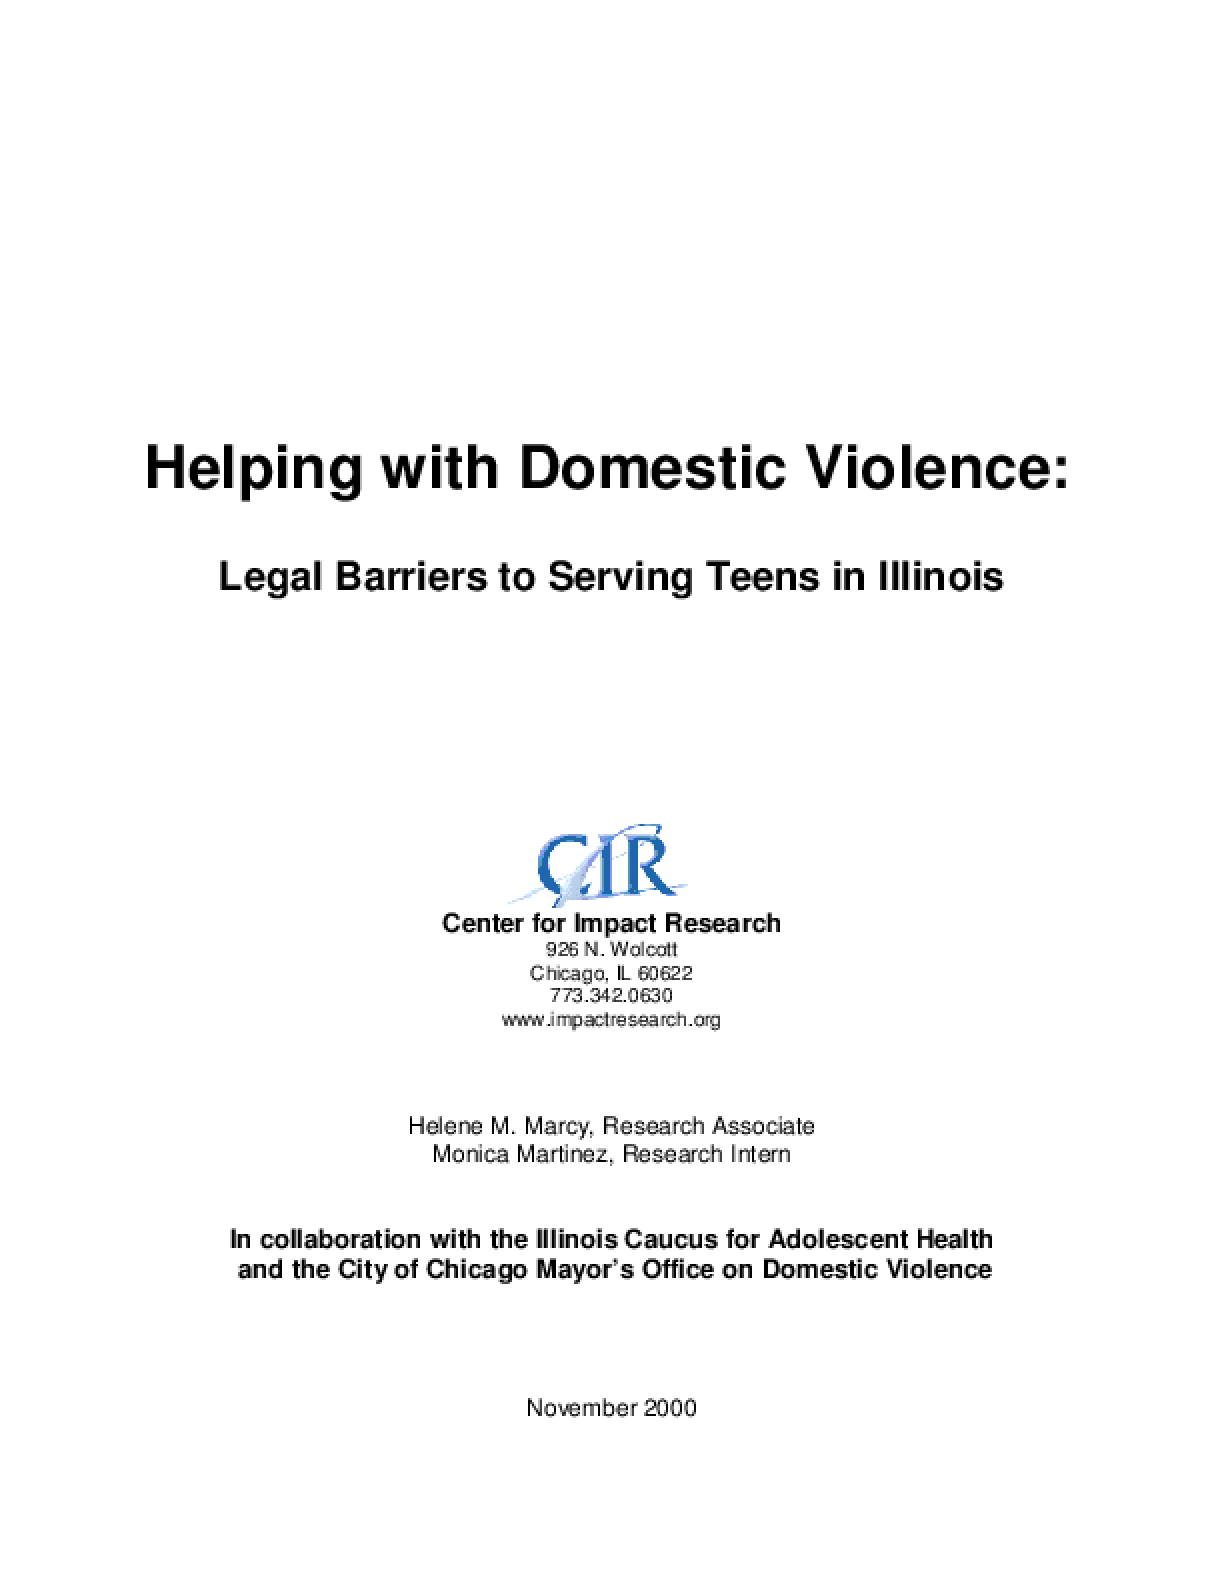 Helping with Domestic Violence: Legal Barriers to Serving Teens in Illinois